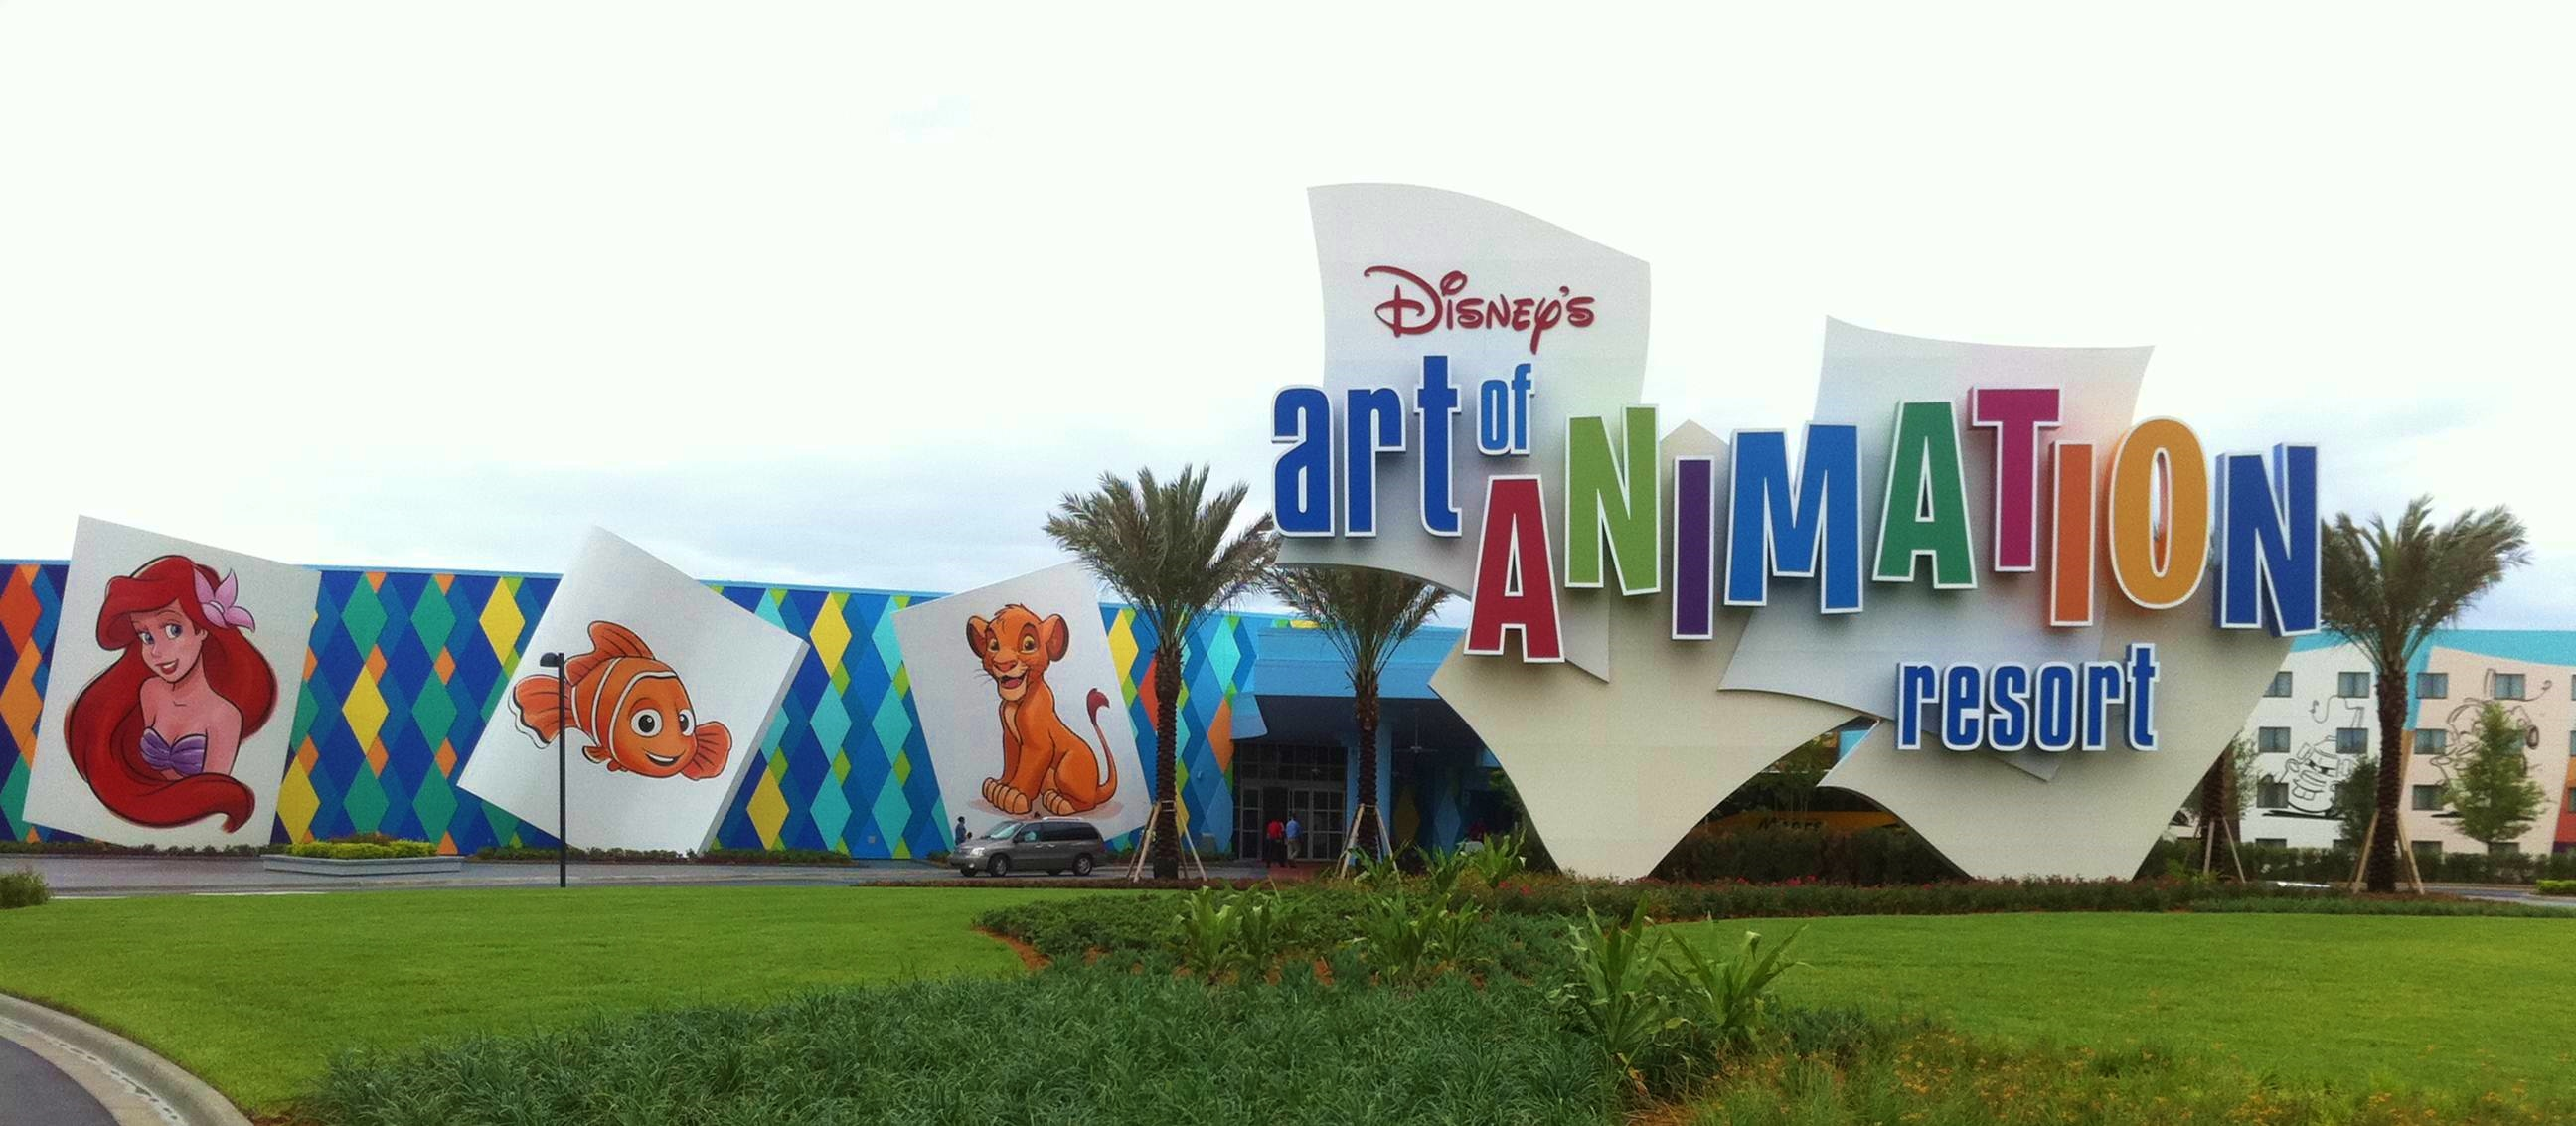 Main-Entrance-Disneys-Art-of-Animation-Resort